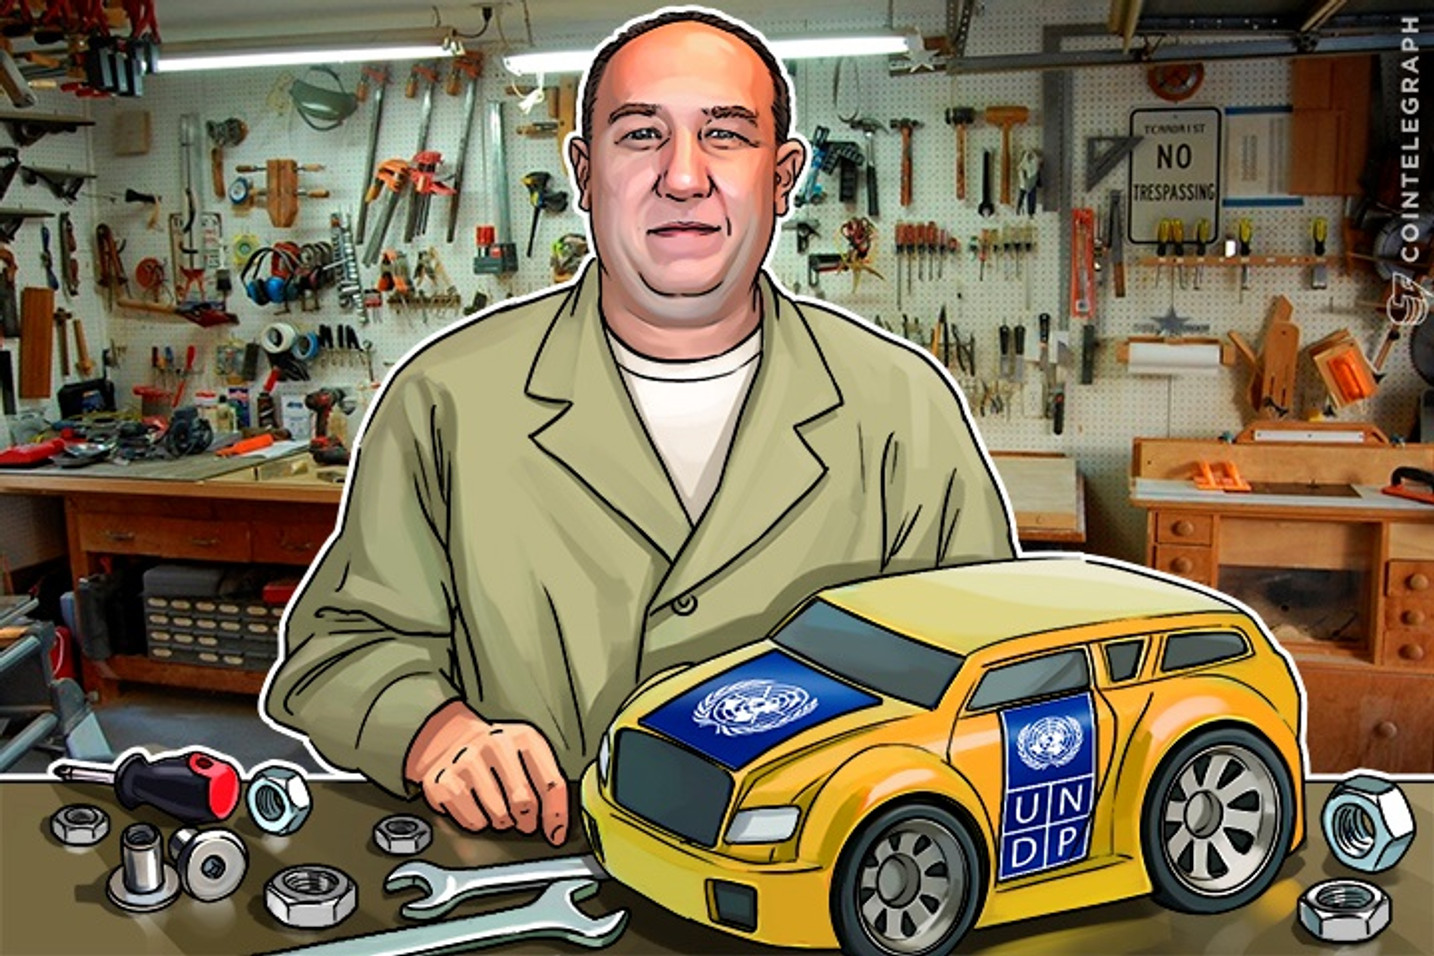 United Nations Will Adopt Emercoin For Its Car Fleet Management Project